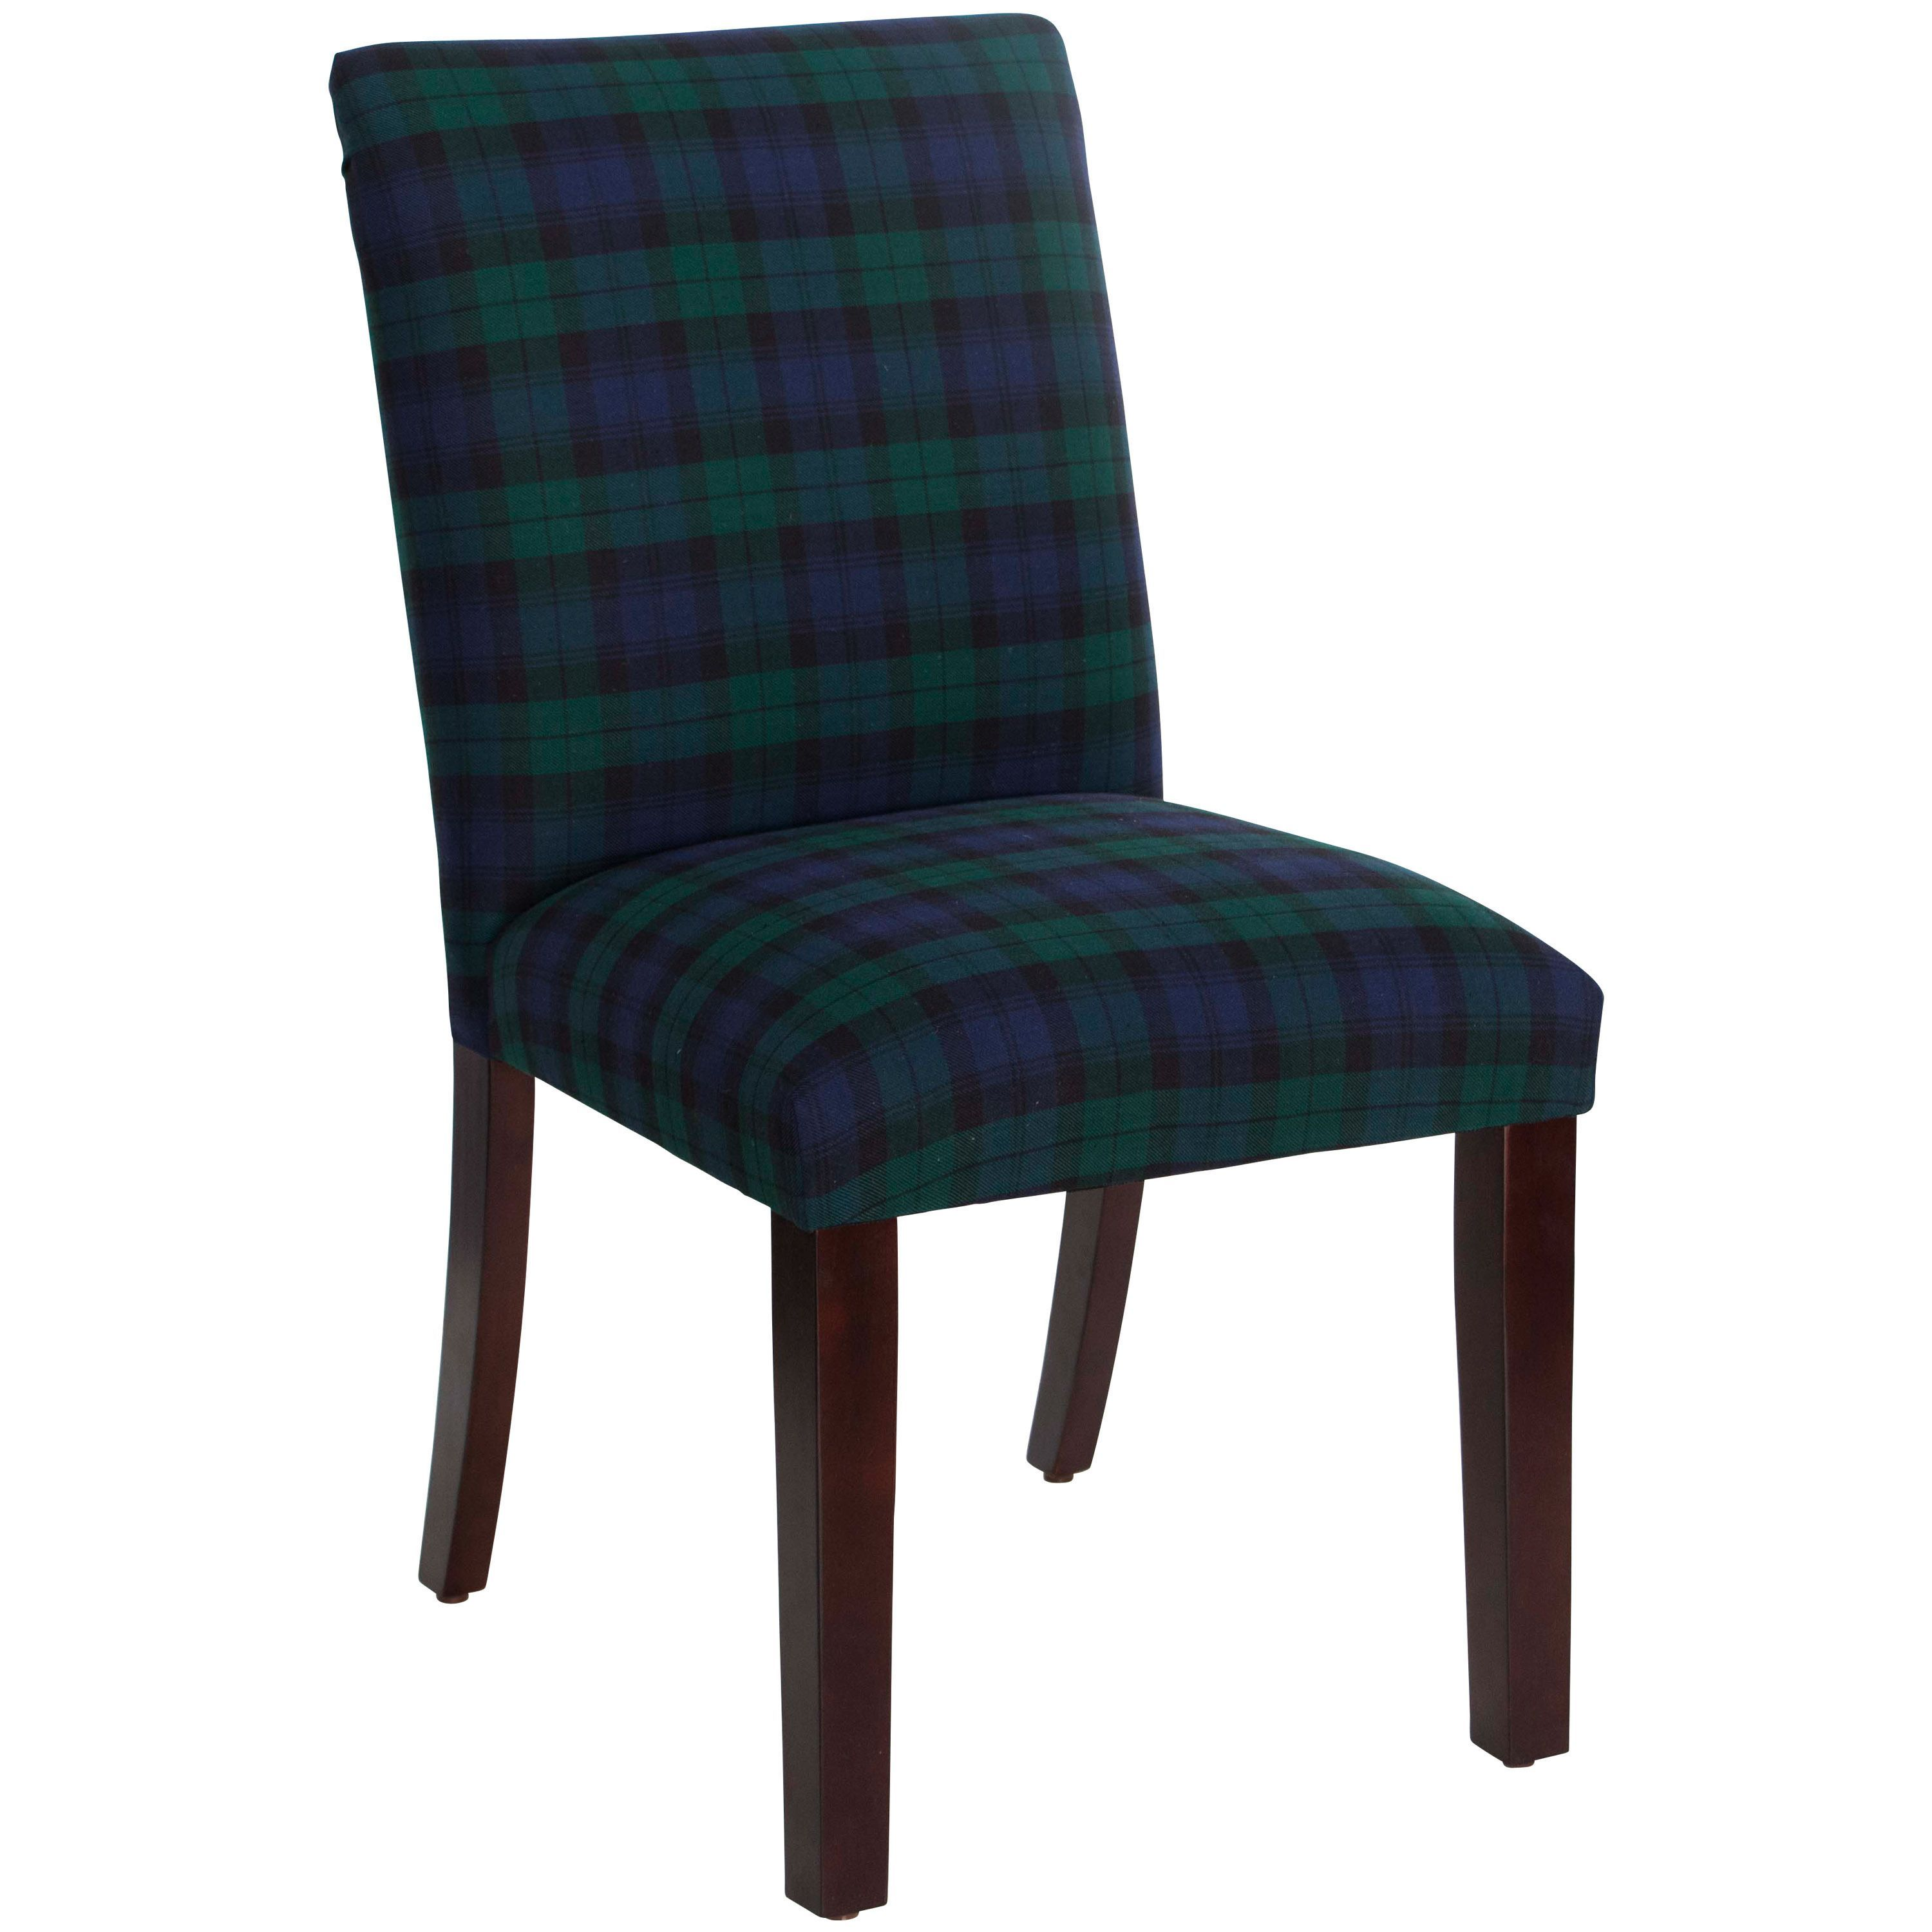 Skyline furniture blackwatch black and green cotton upholstered dining chair blackwatch blackwatch fabric